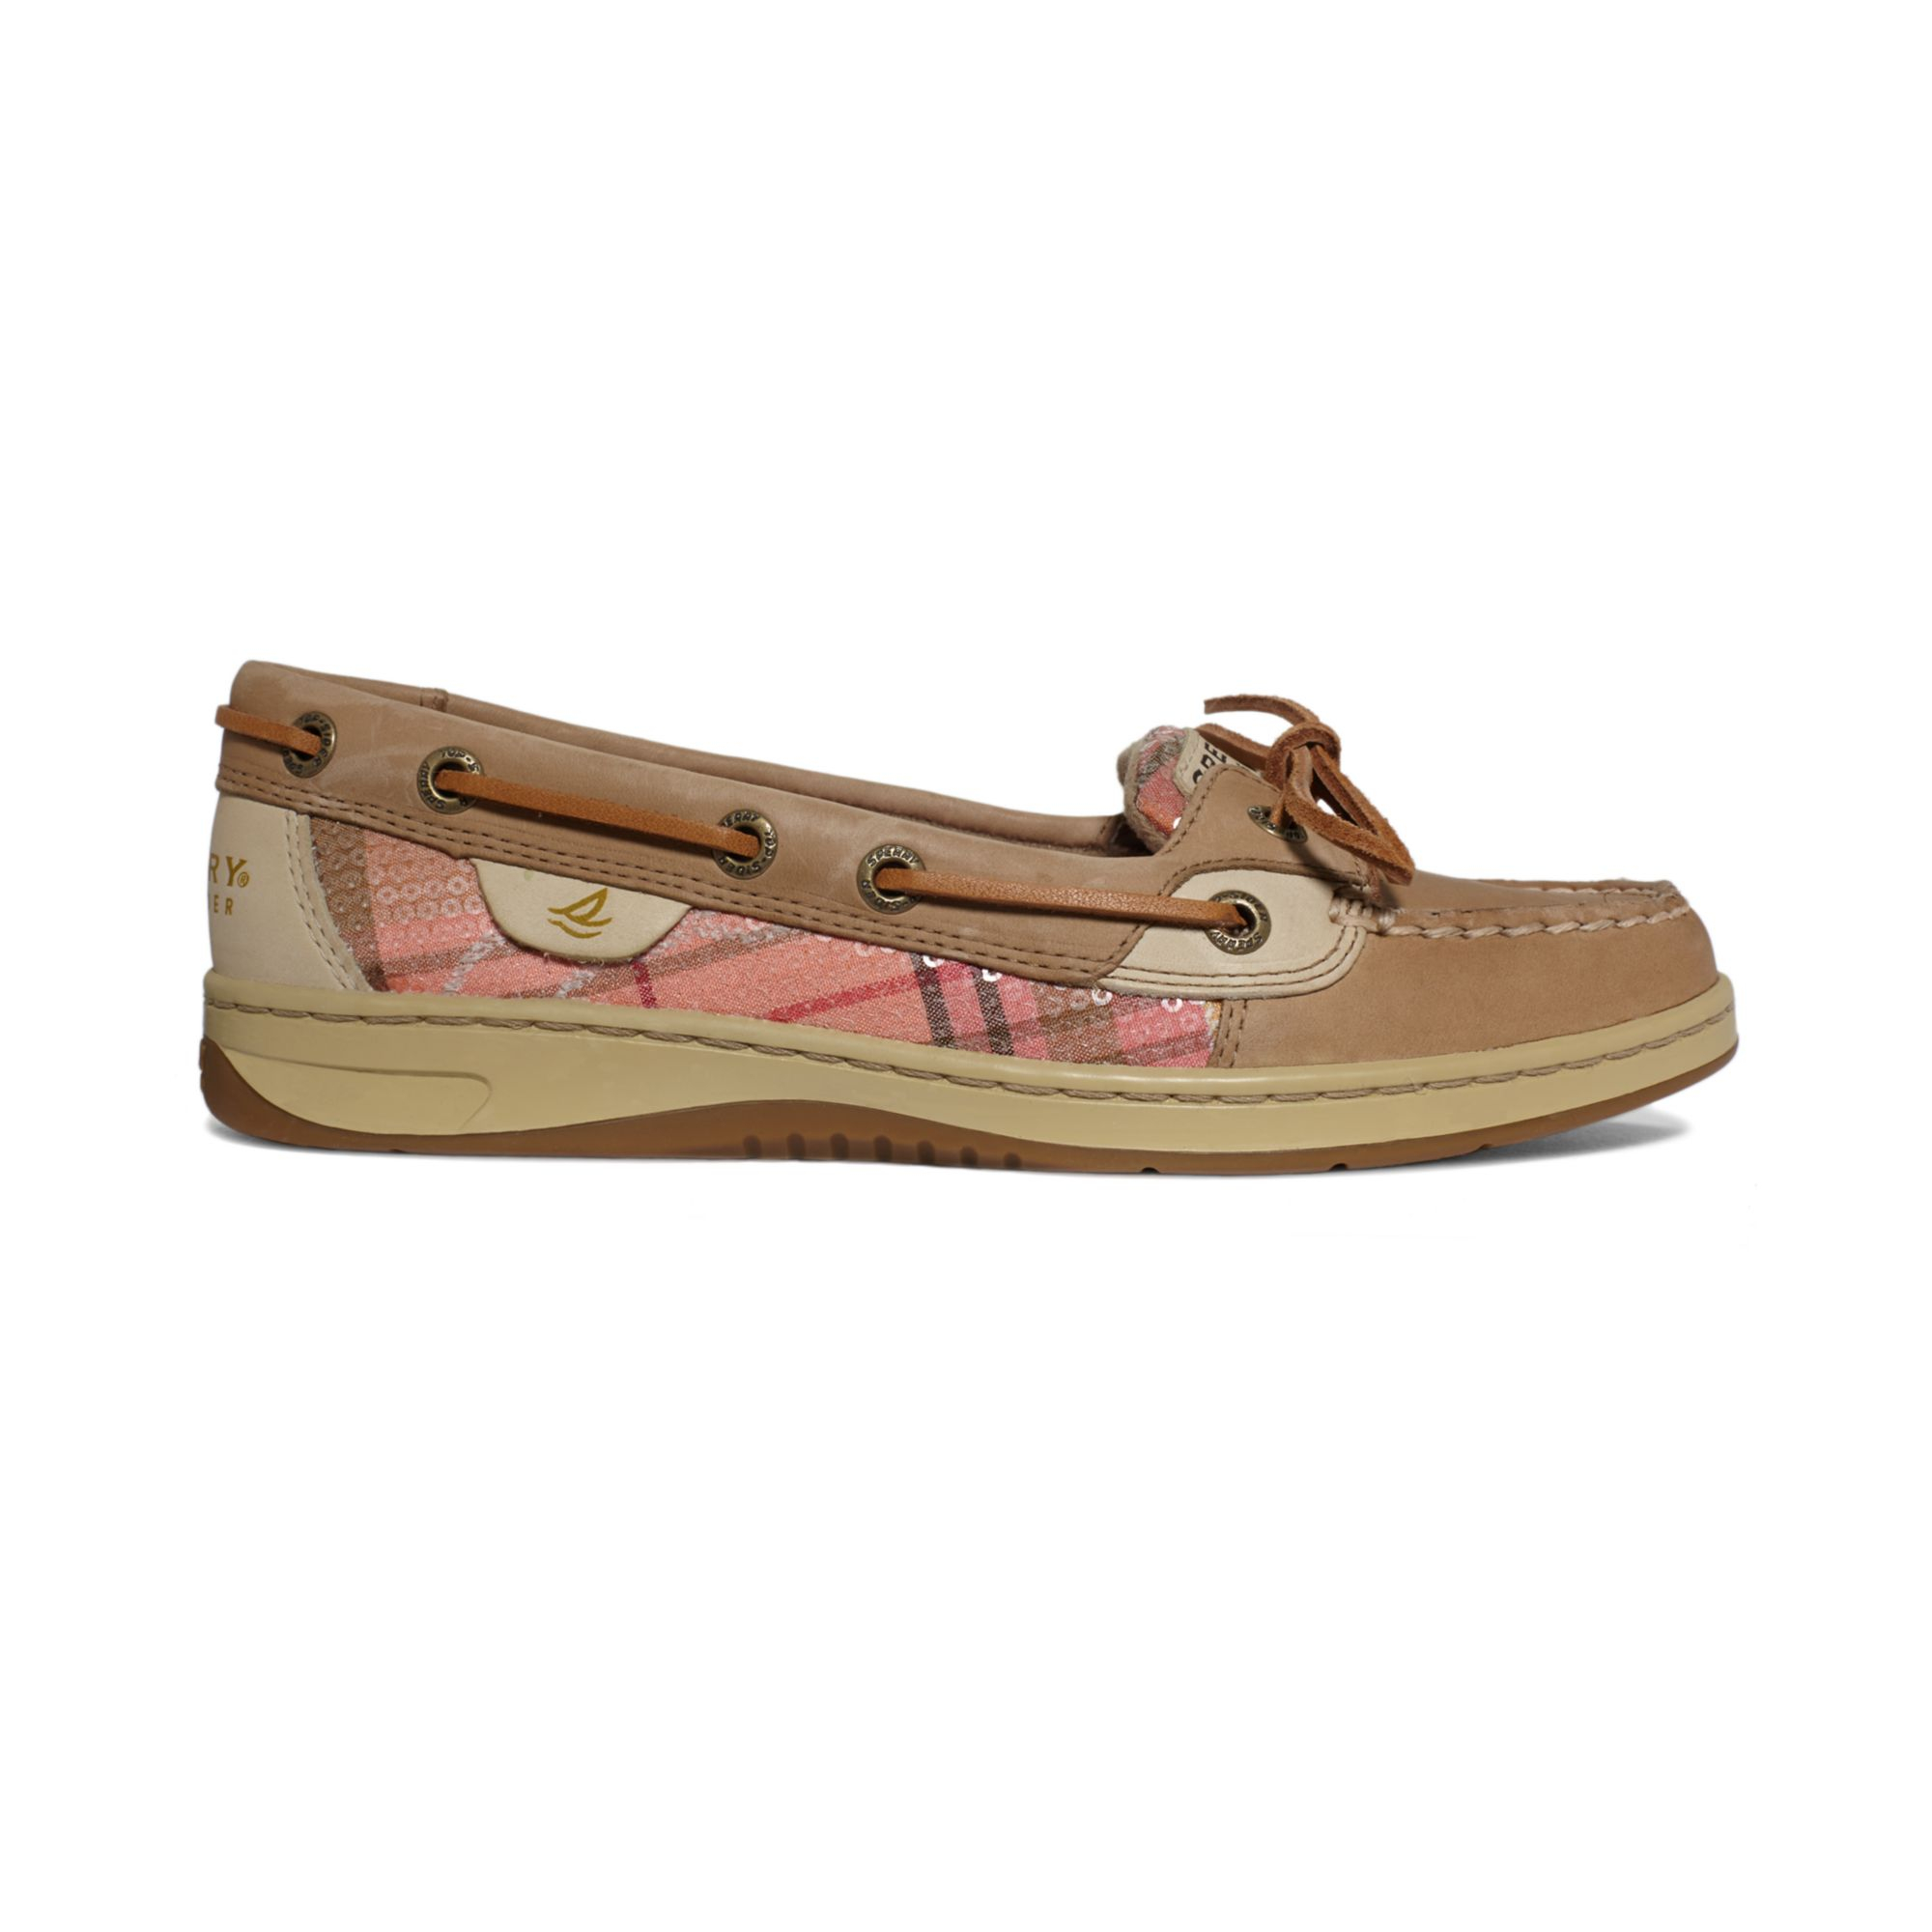 Sperry Top Sider Angelfish Womens Boat Shoes Pink